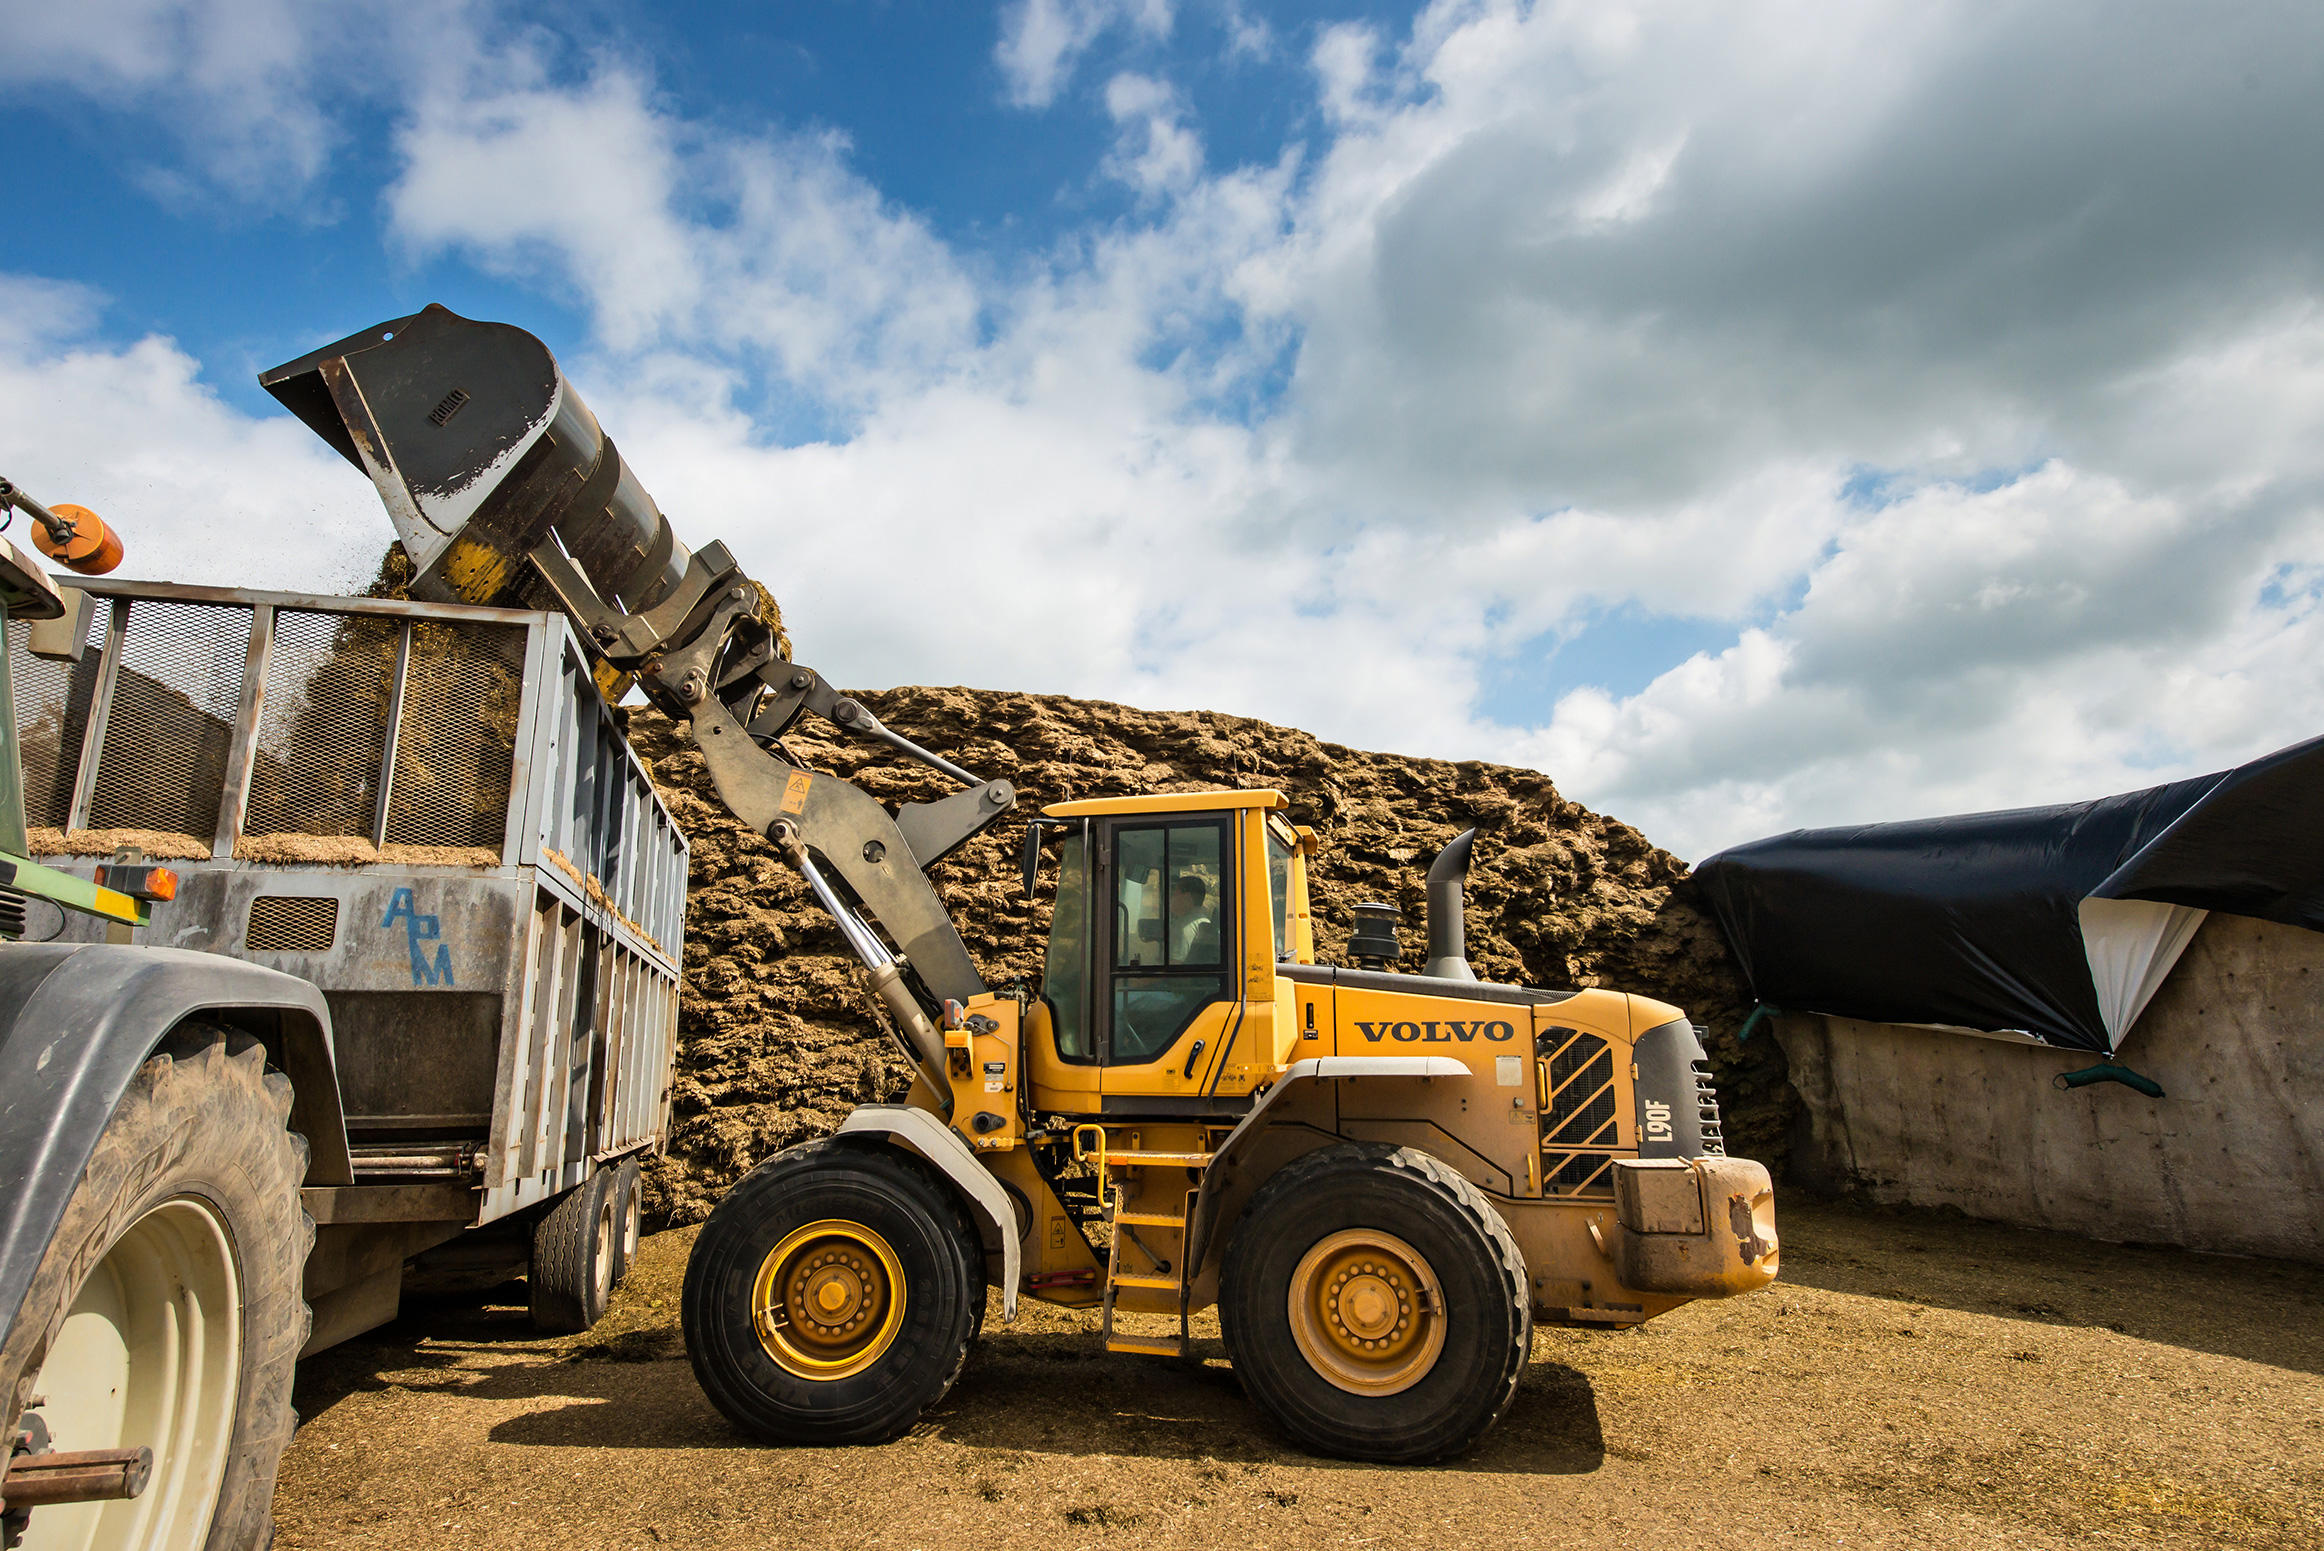 The intelligent load-sensing hydraulic system helps the operator better control both the Volvo L90F wheel loader and the load